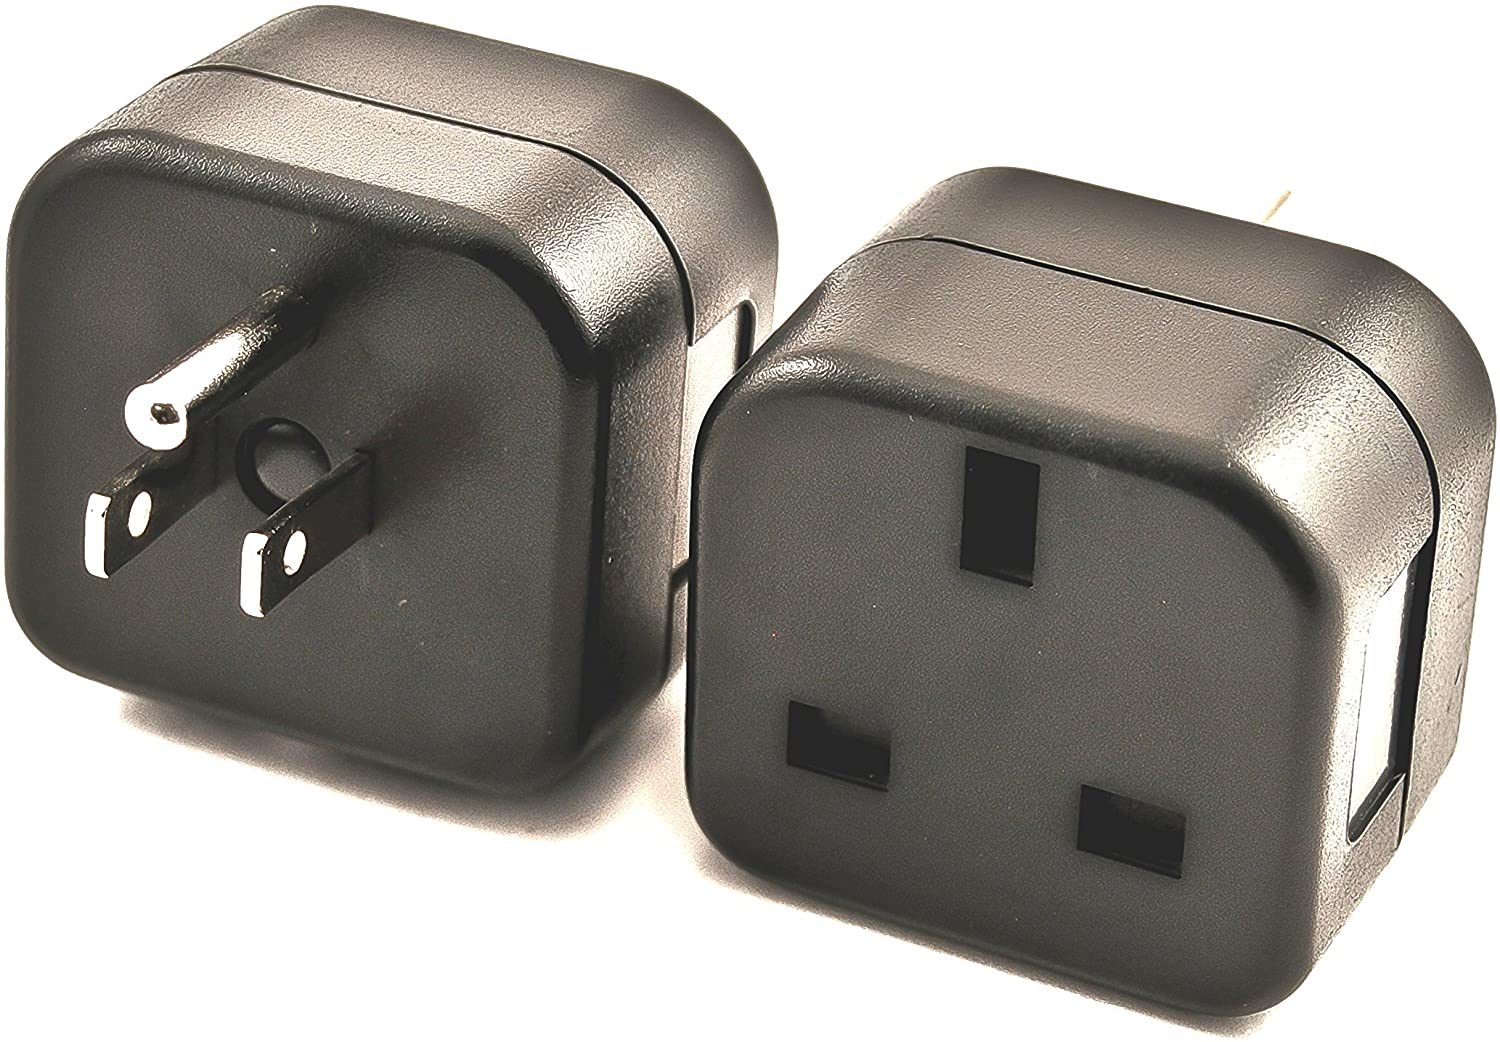 VCT VP18 UK to USA Plug Adapter Converts 3 pin British Plug to 3 Prong Grounded USA Wall Plug,Black